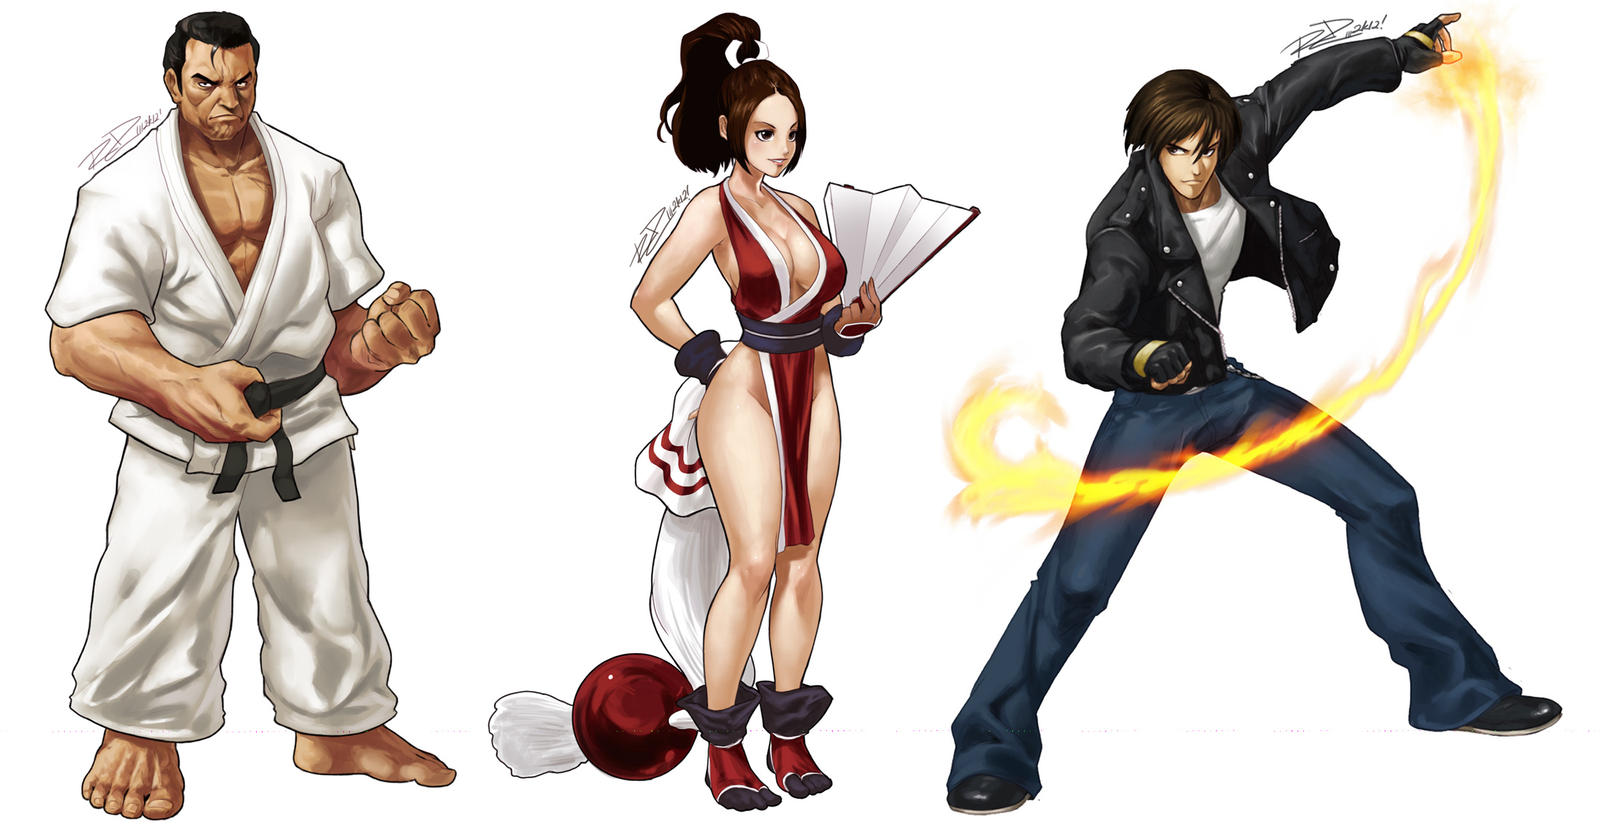 KoF Test by Robaato